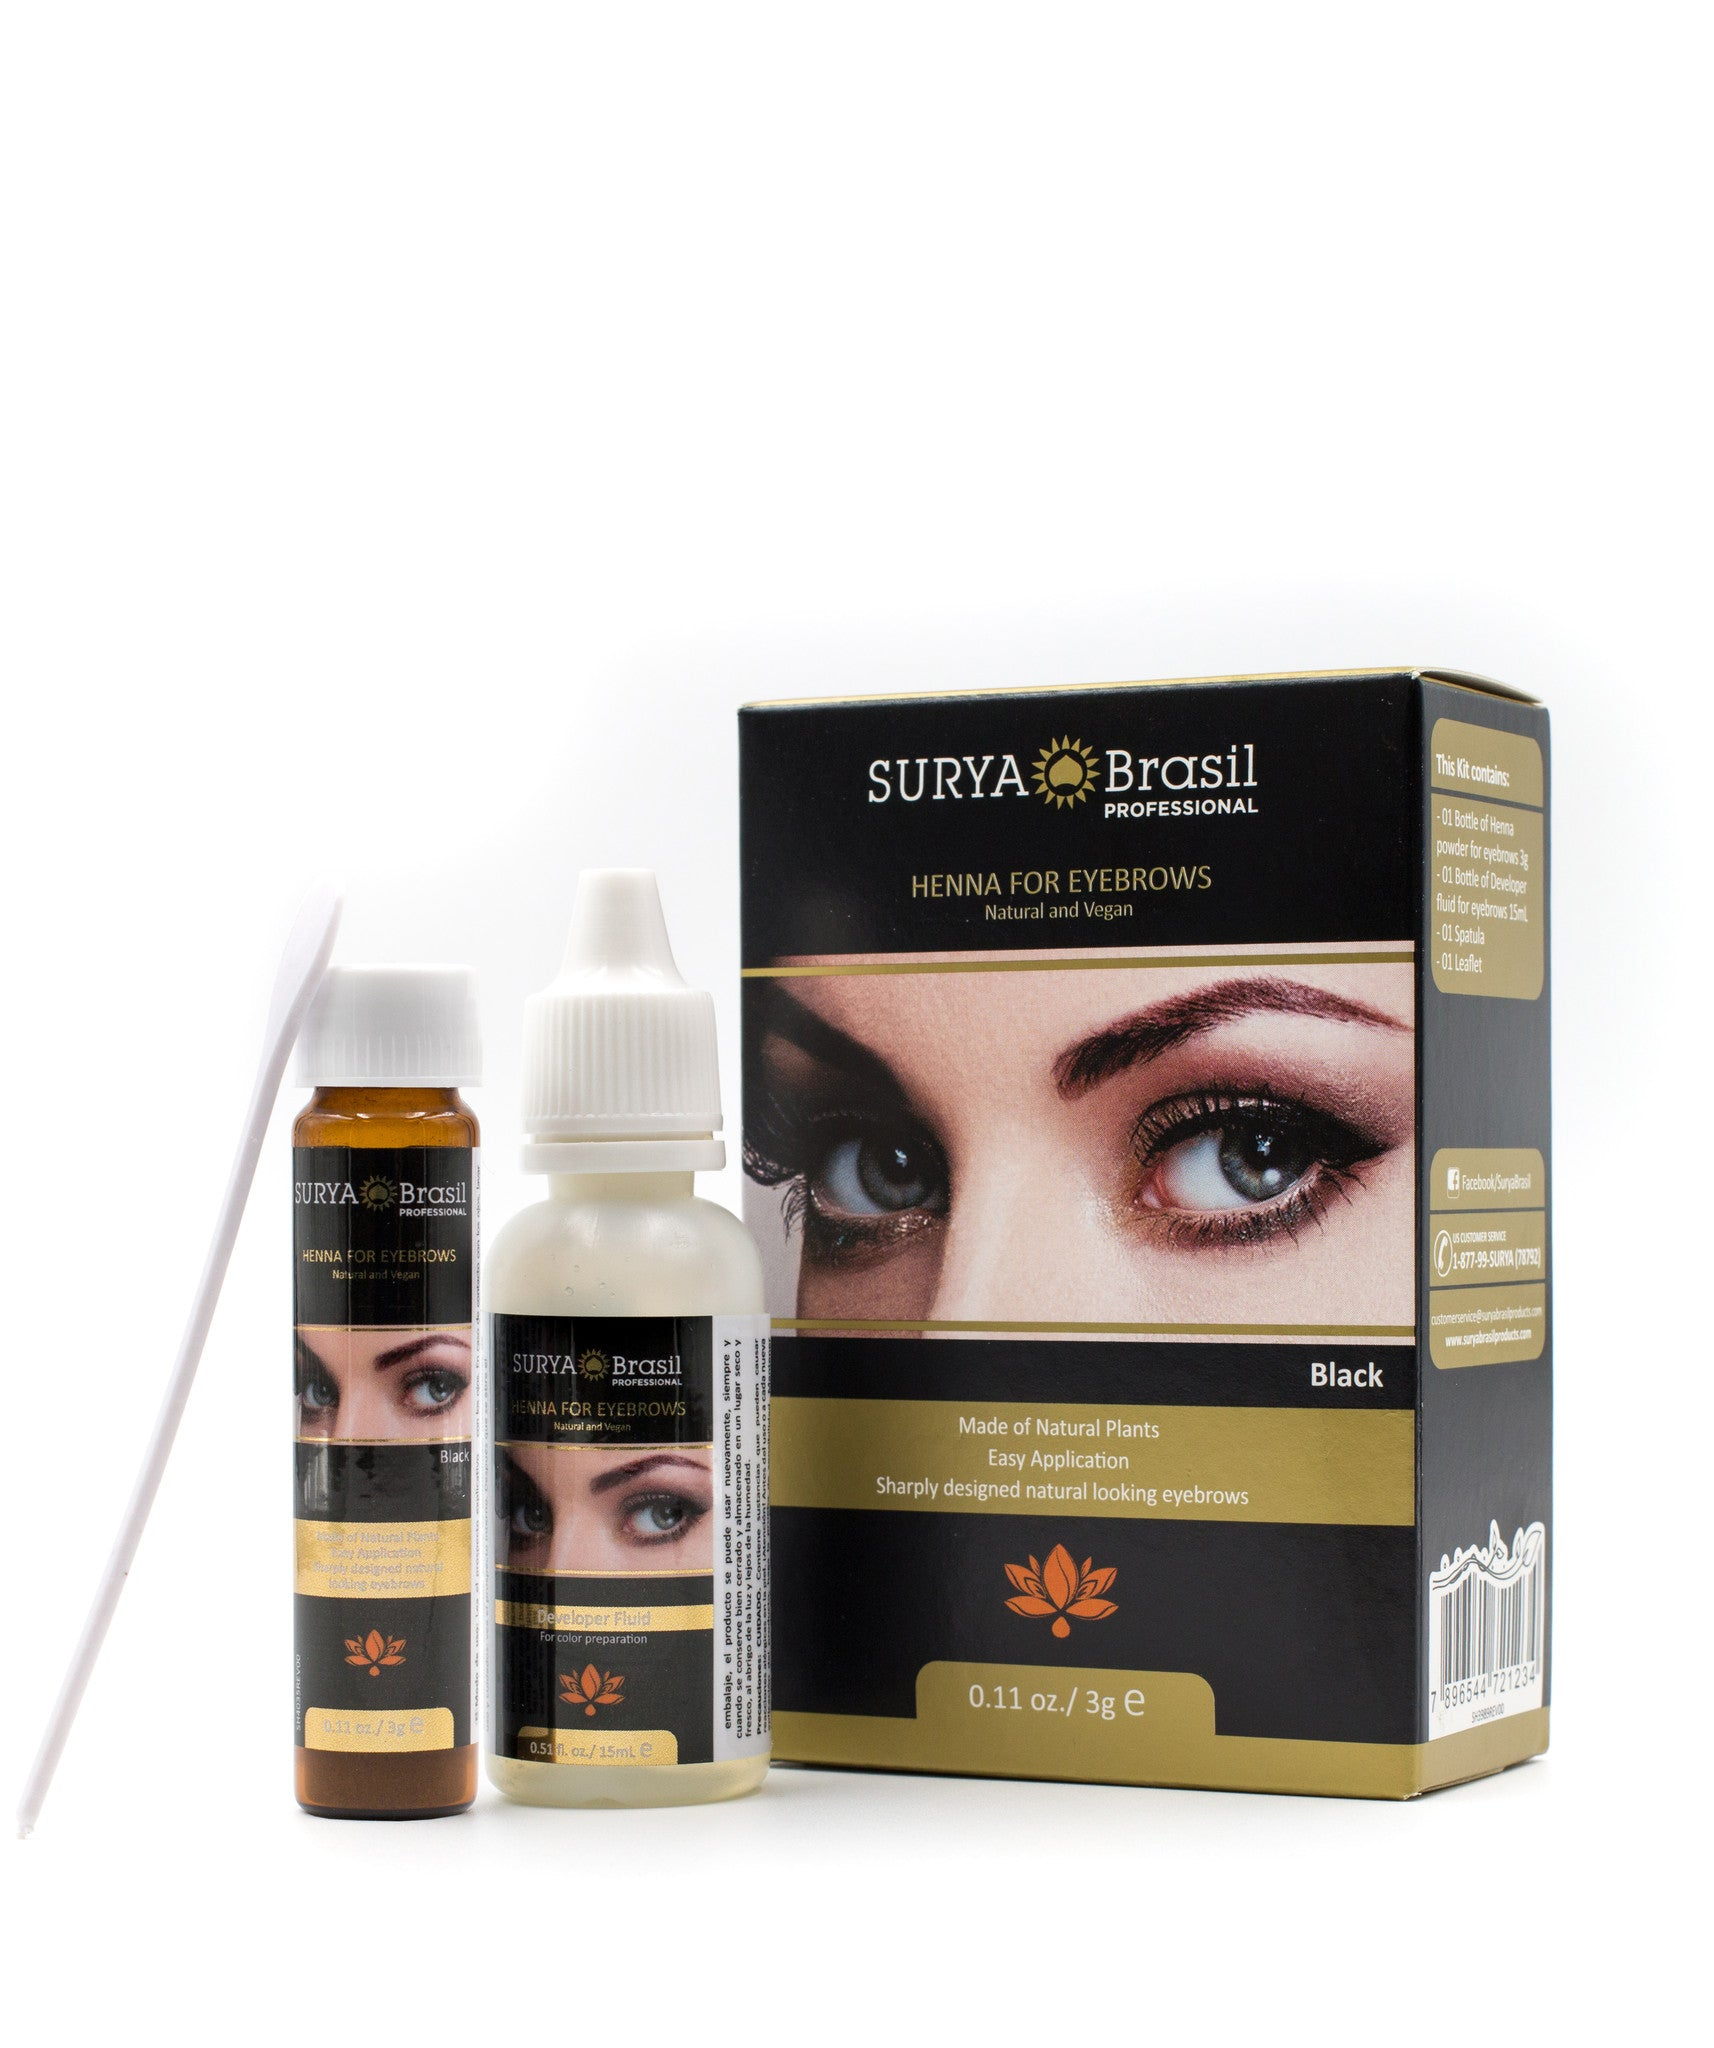 Black Henna Dye For Eyebrows Black Eyebrow Dye Surya Brasil